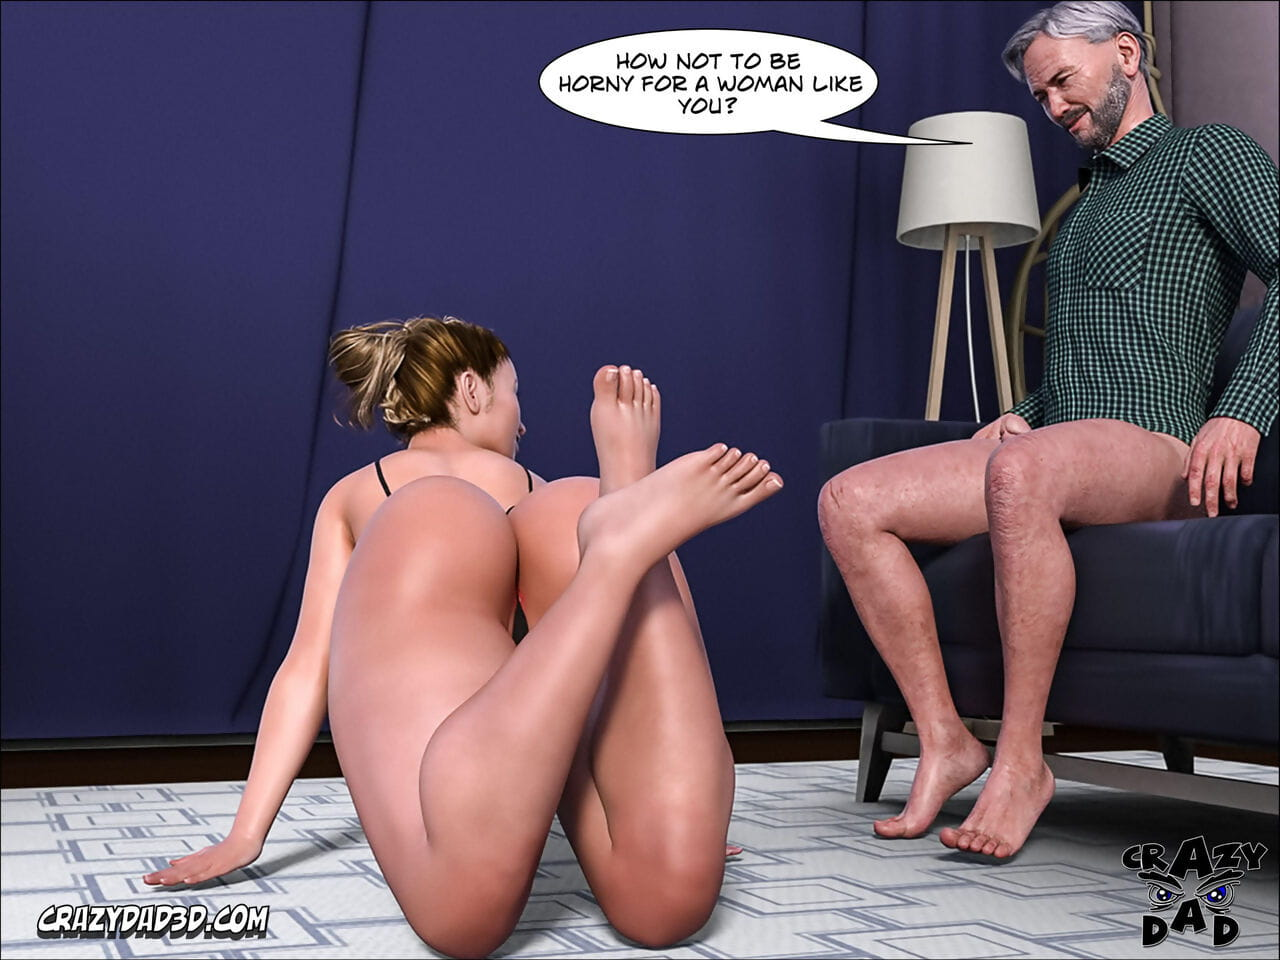 Crazy Dad 3D Father-in-Law at Home 9 English - part 3